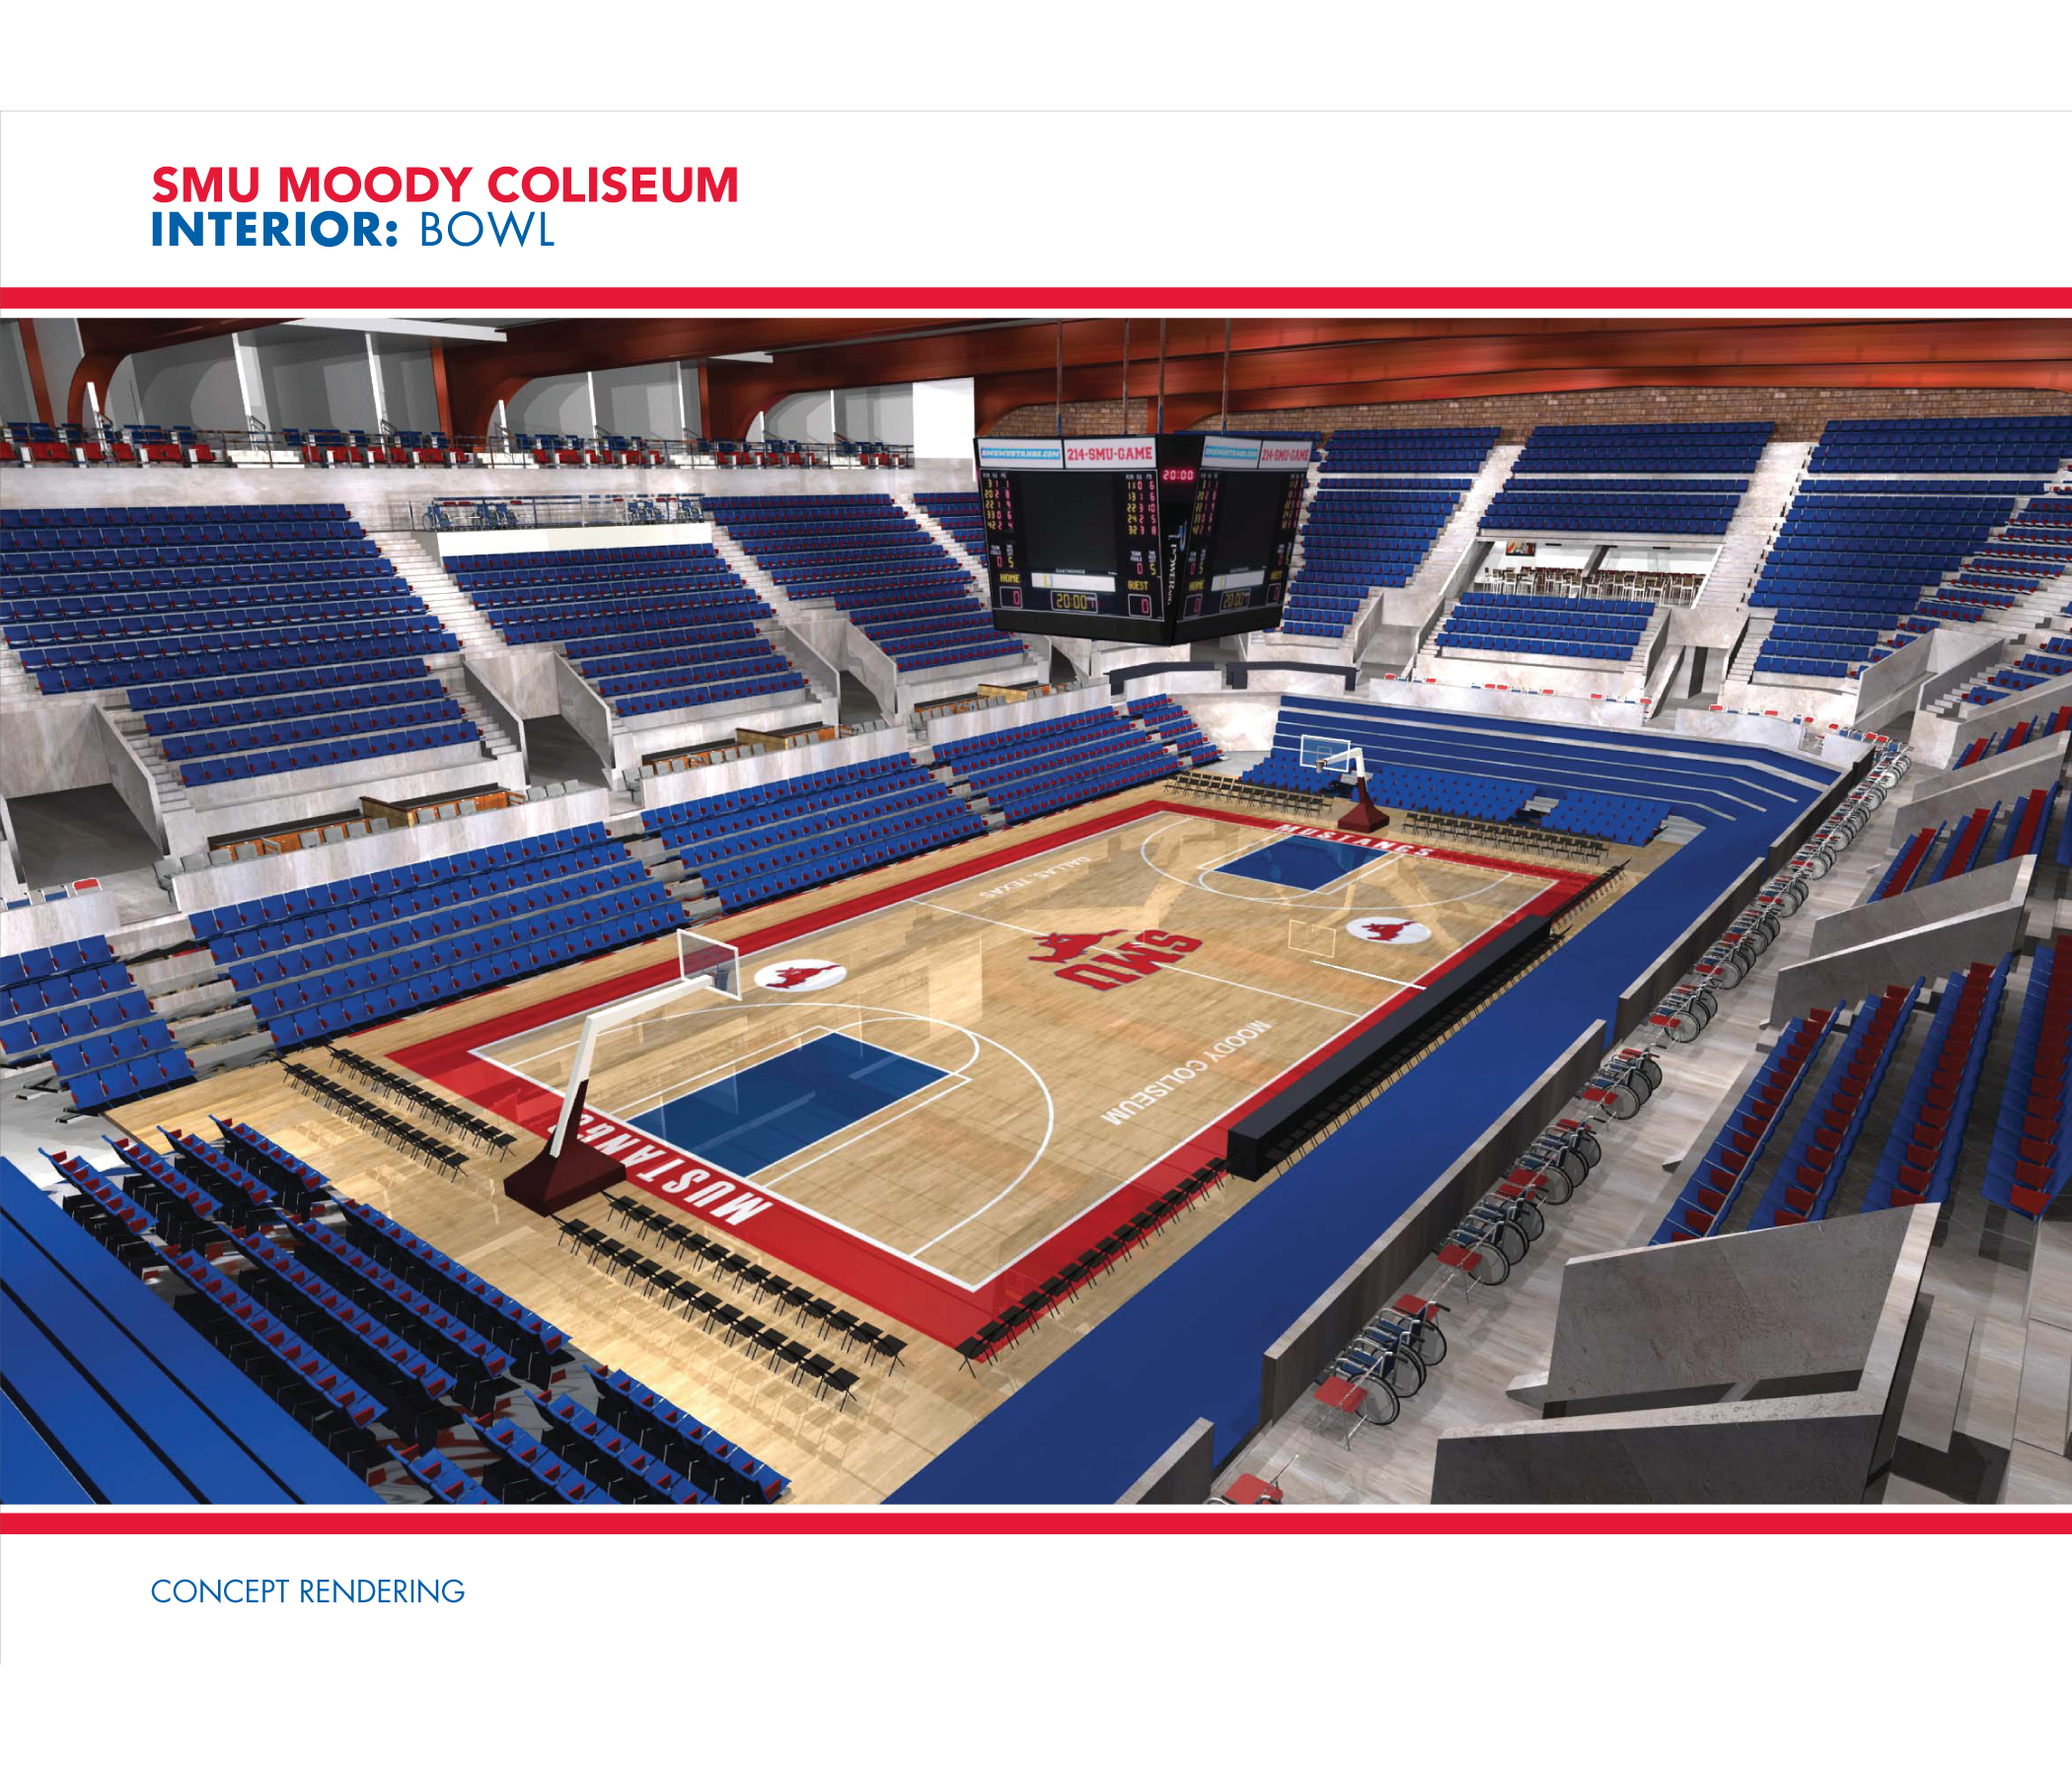 Rendering of the Interior Bowl for SMU's Moody Coliseum